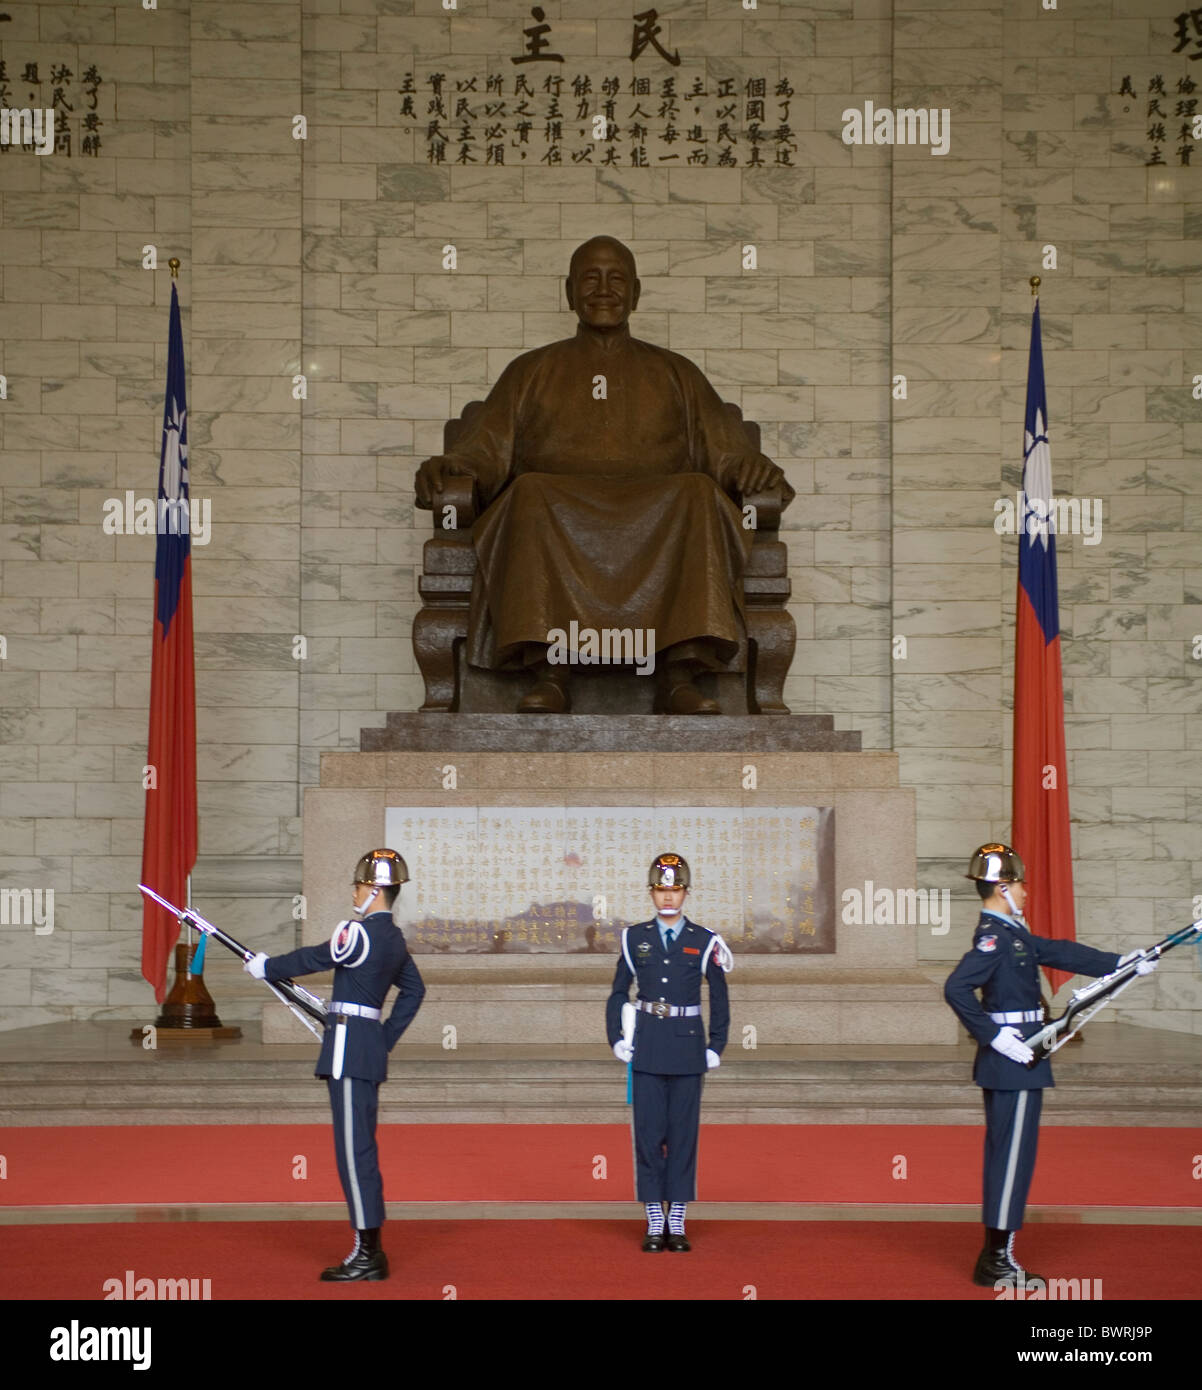 Taiwan Taipei Chiang Kai-Shek memorial, changing of the guard - Stock Image